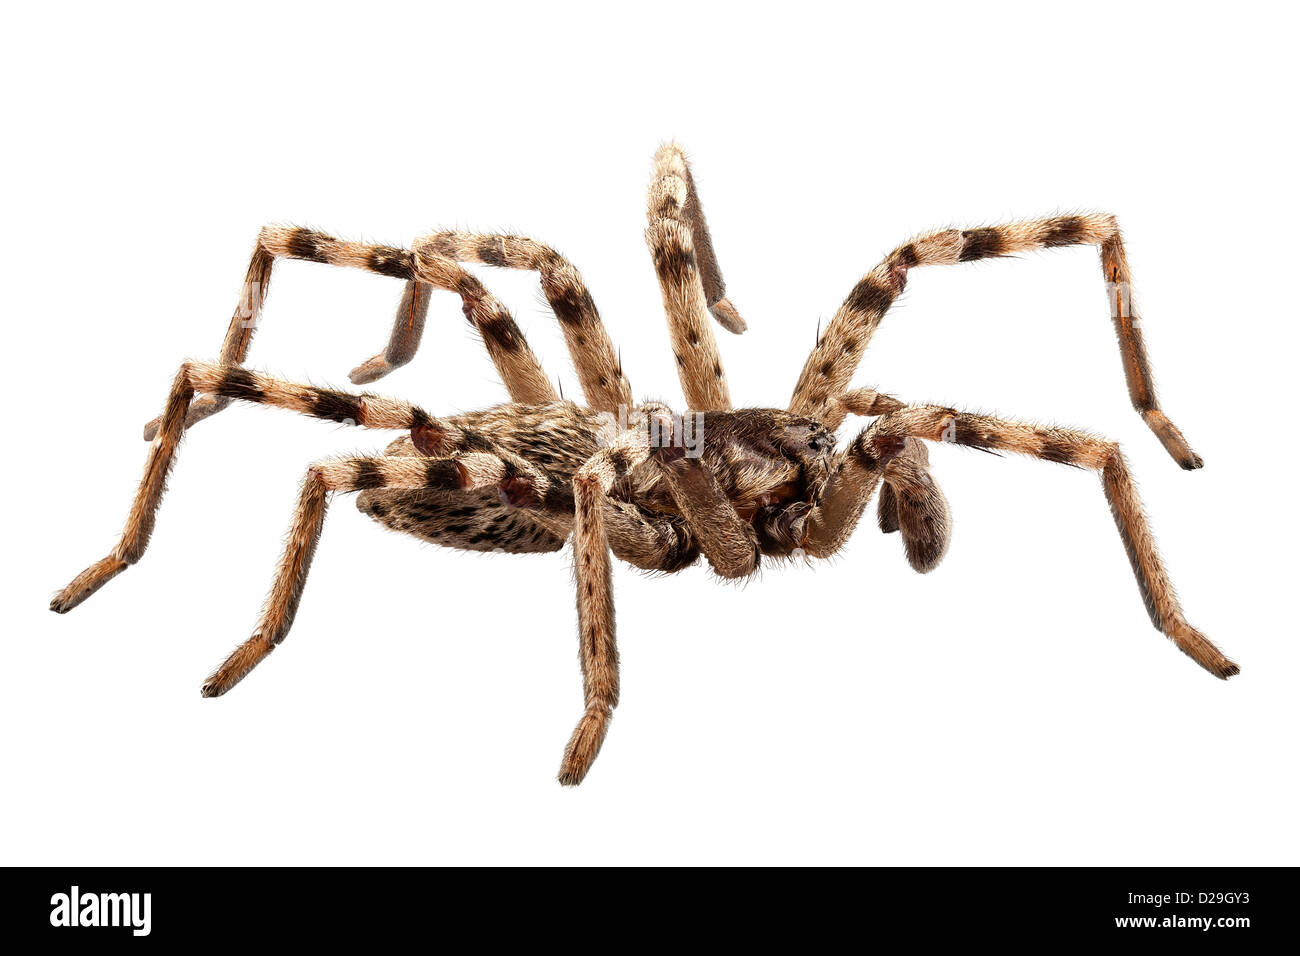 wolf spider lycosa sp in high definition - Stock Image